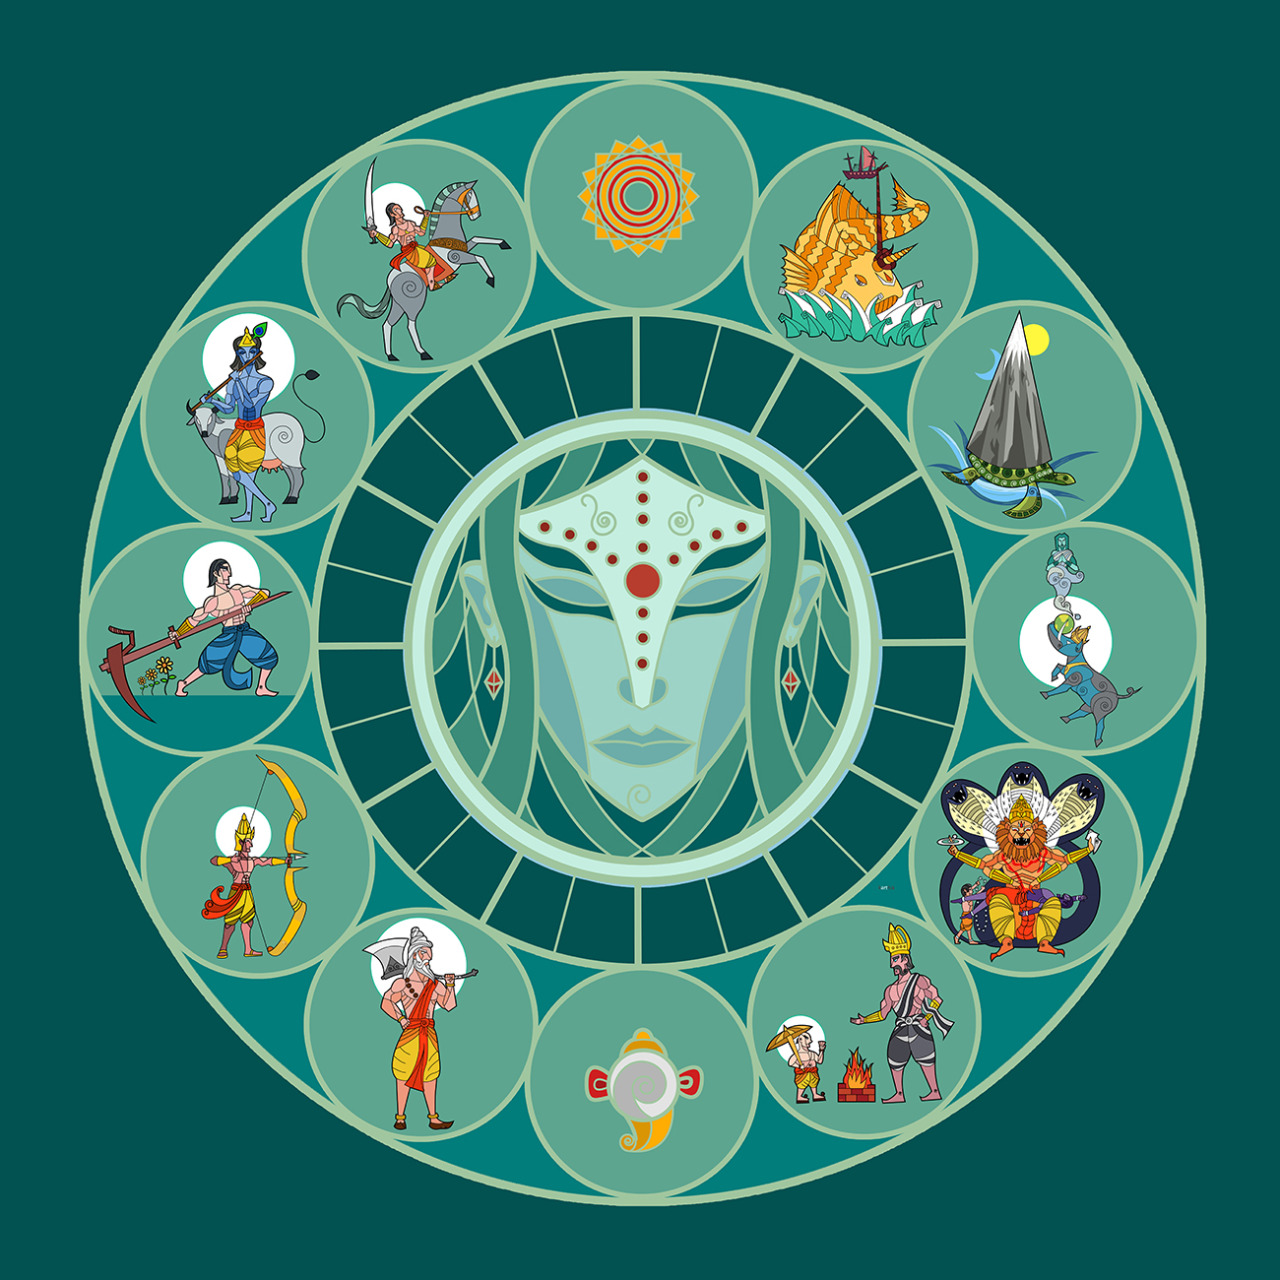 The cycle of avatars  An attempt at putting together the ten avatars of Vishnu in the form of a circular clock, as a loose metaphor for the eternal cycle of time and the universe, and also representing the fact that the duty of all of the avatars was to protect the world, represented as bhooma devi.